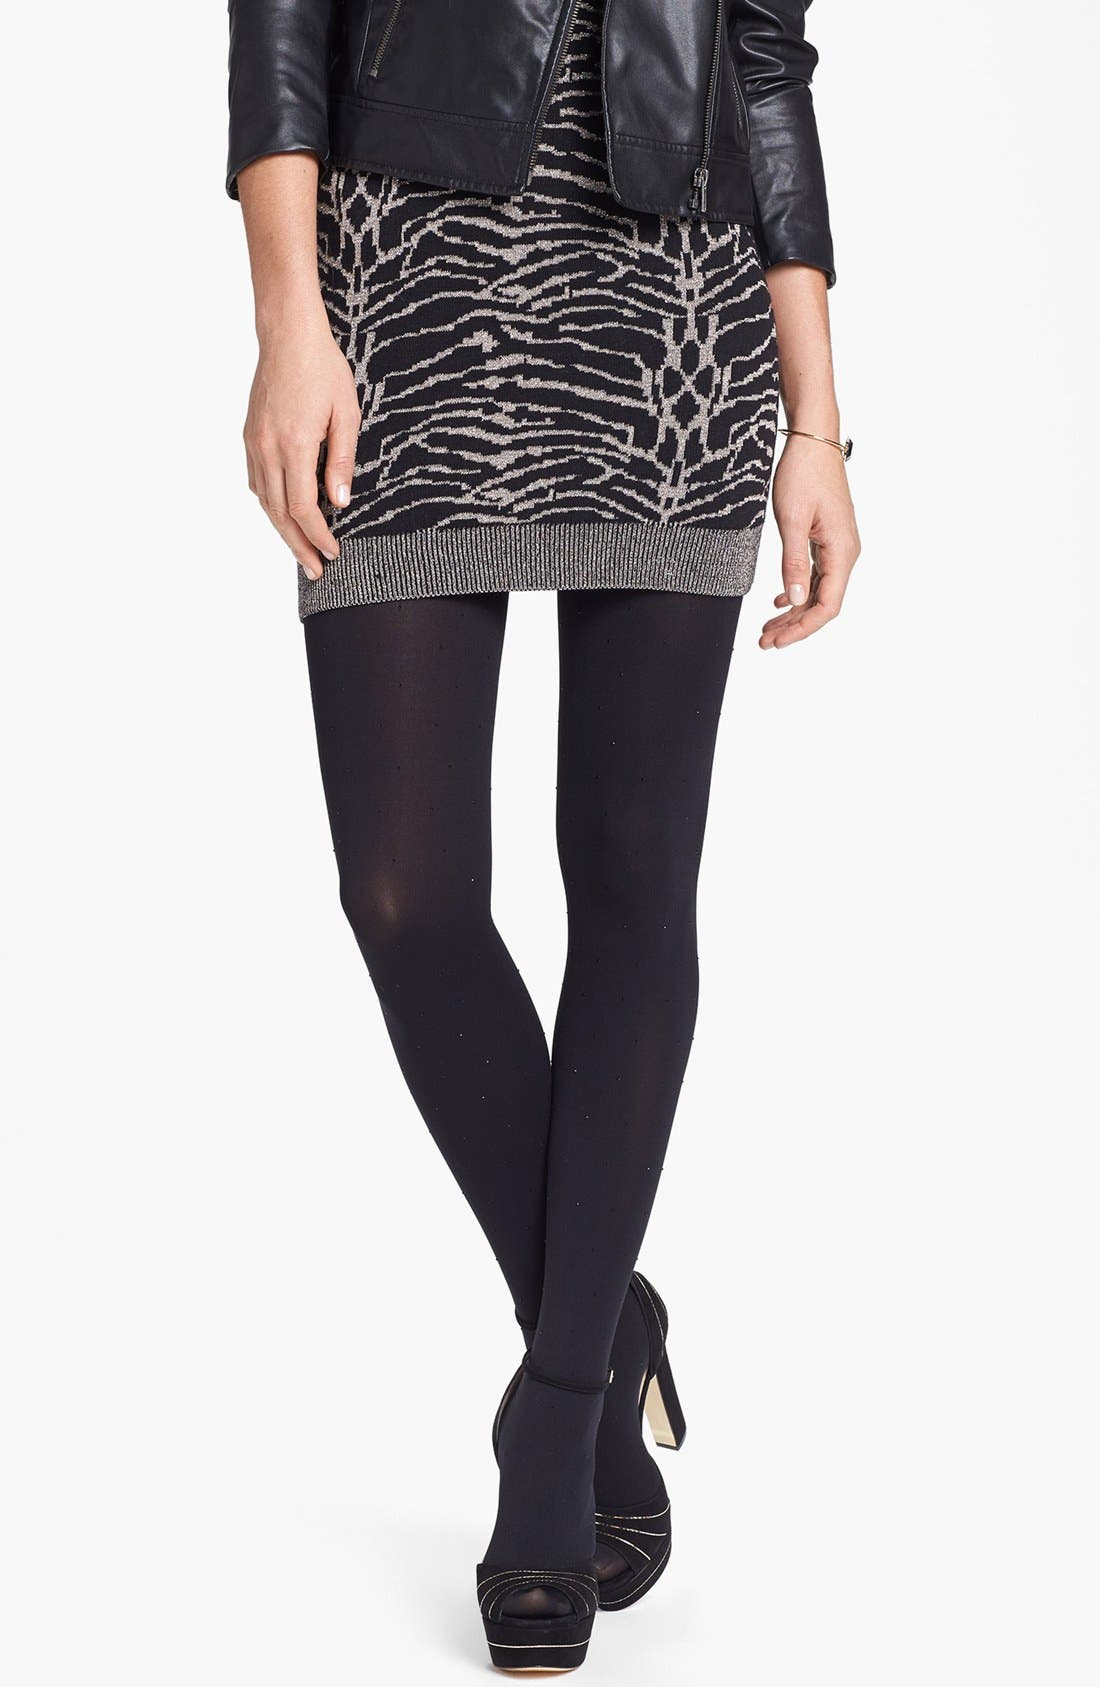 Alternate Image 1 Selected - Nordstrom Studded Tights